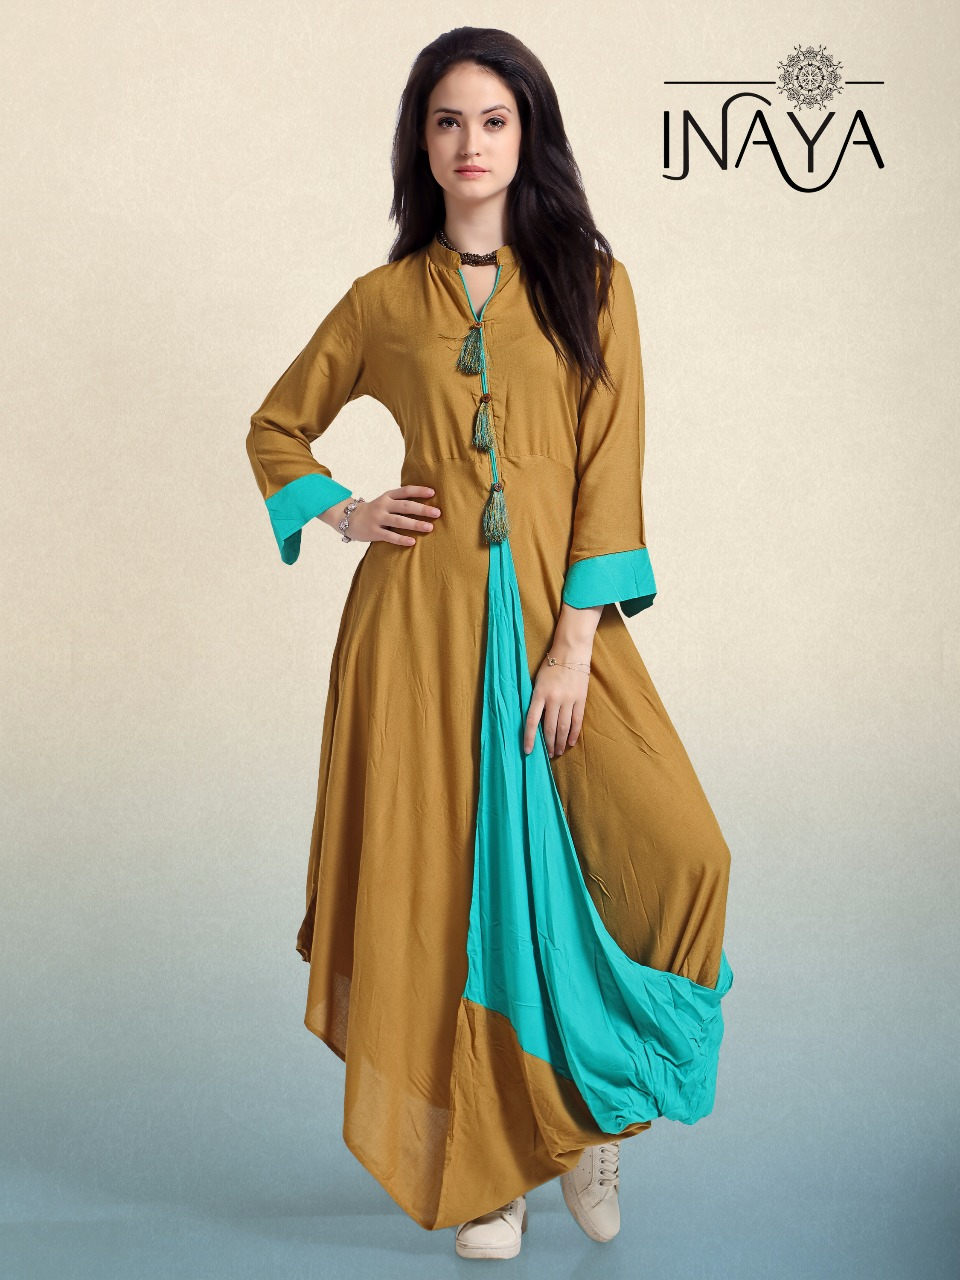 Libas studio inaya stylish cowl k-13 full style gown ready made wear ...